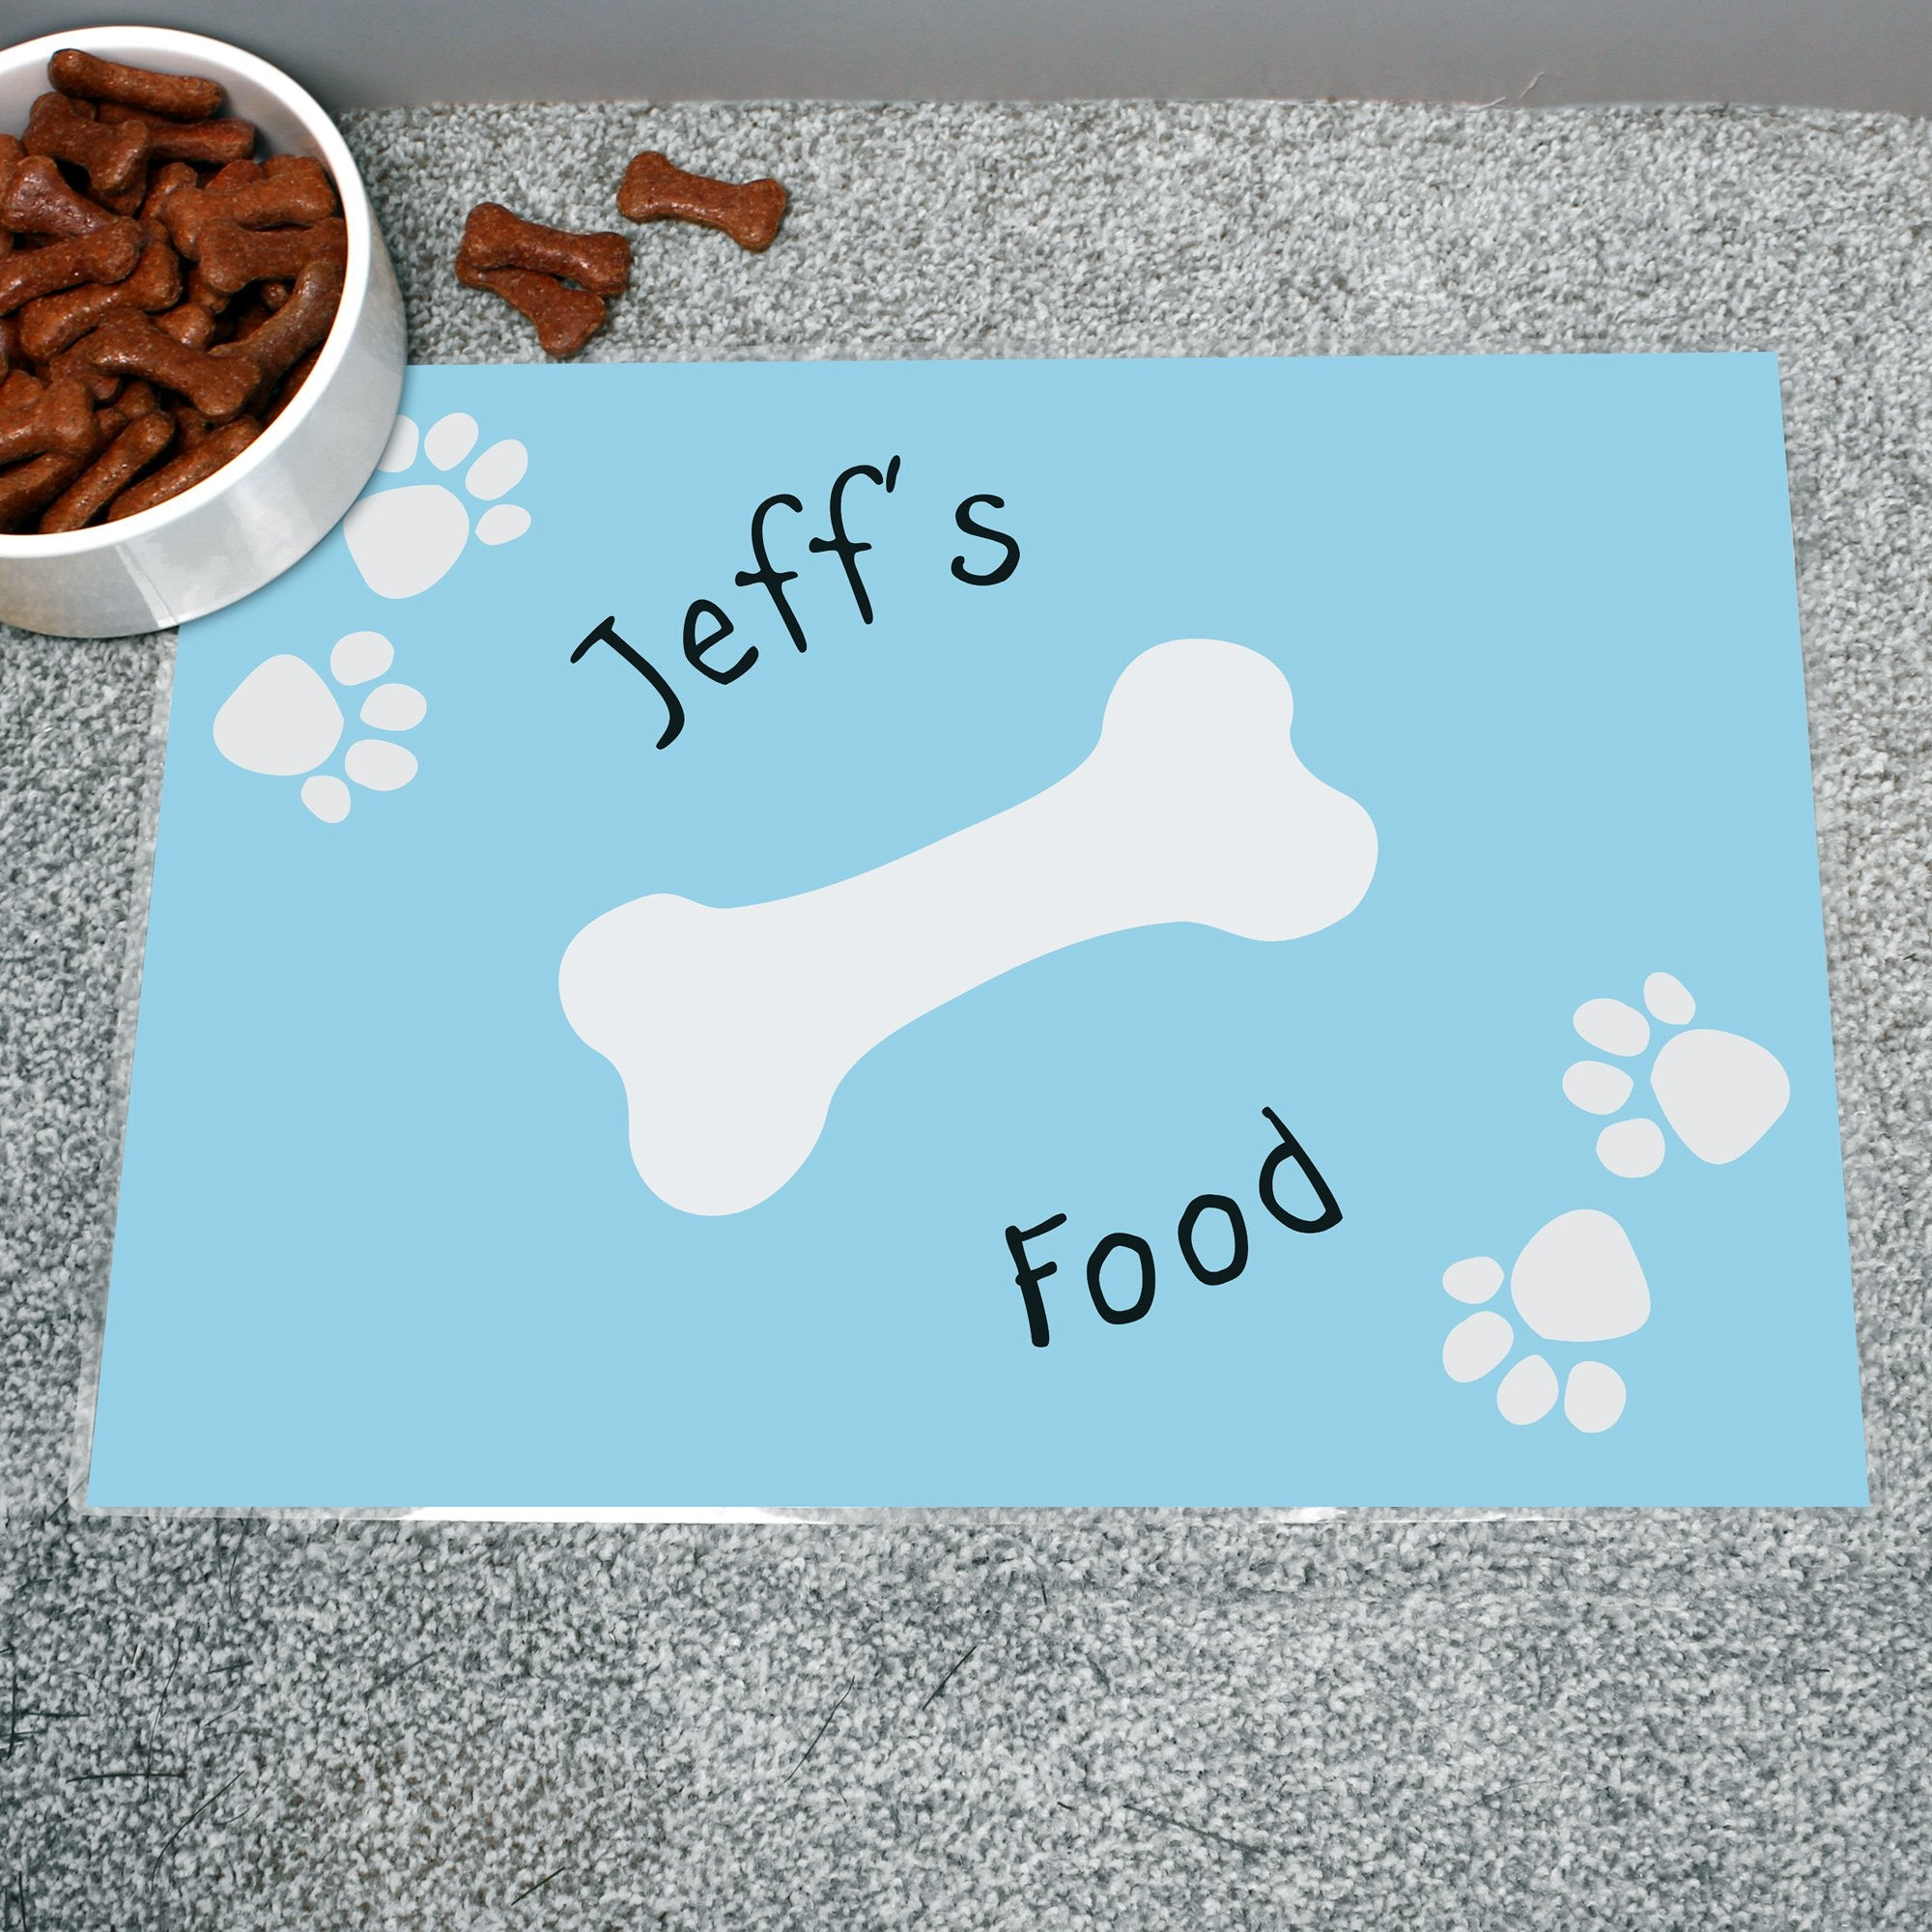 Personalised Dog Placemat, Pet Bowl Mats by Glamorous Gifts